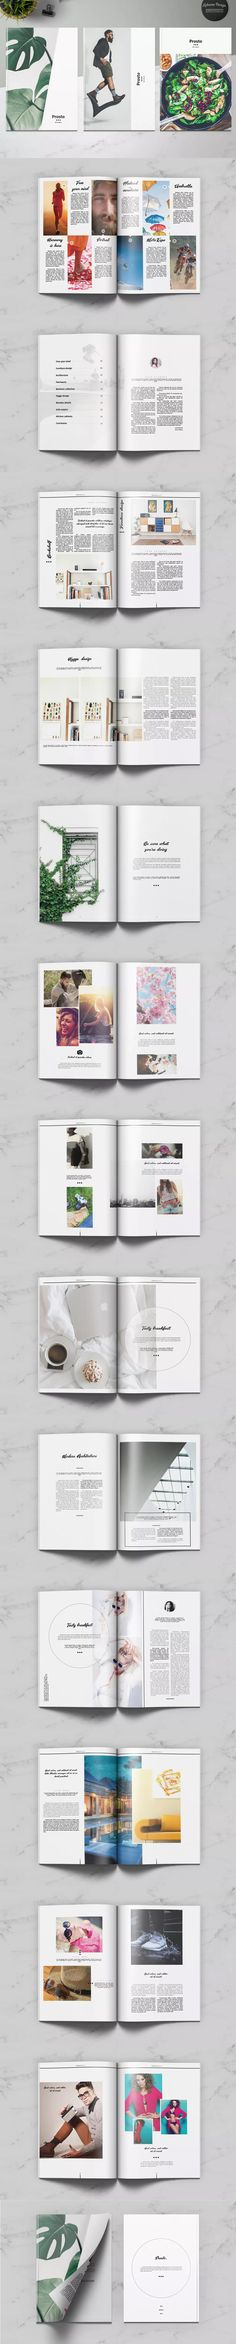 Prosto Universal Magazine Template InDesign INDD - A4 and Letter Size